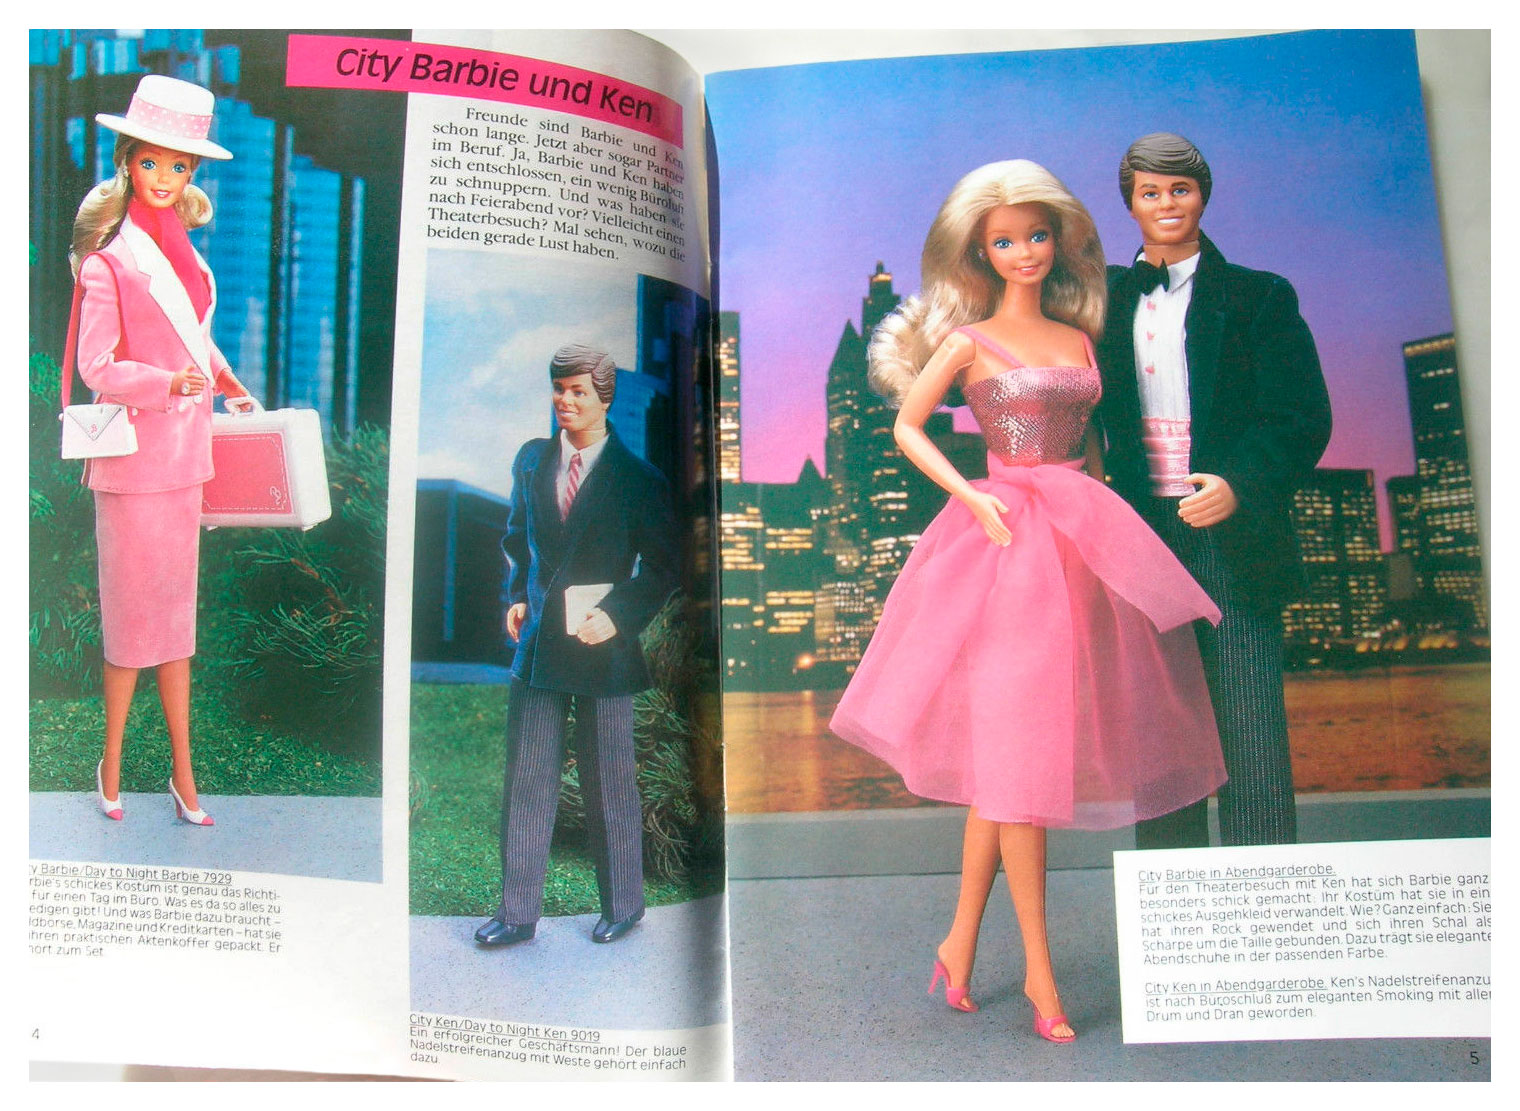 From 1985 German Barbie Journal